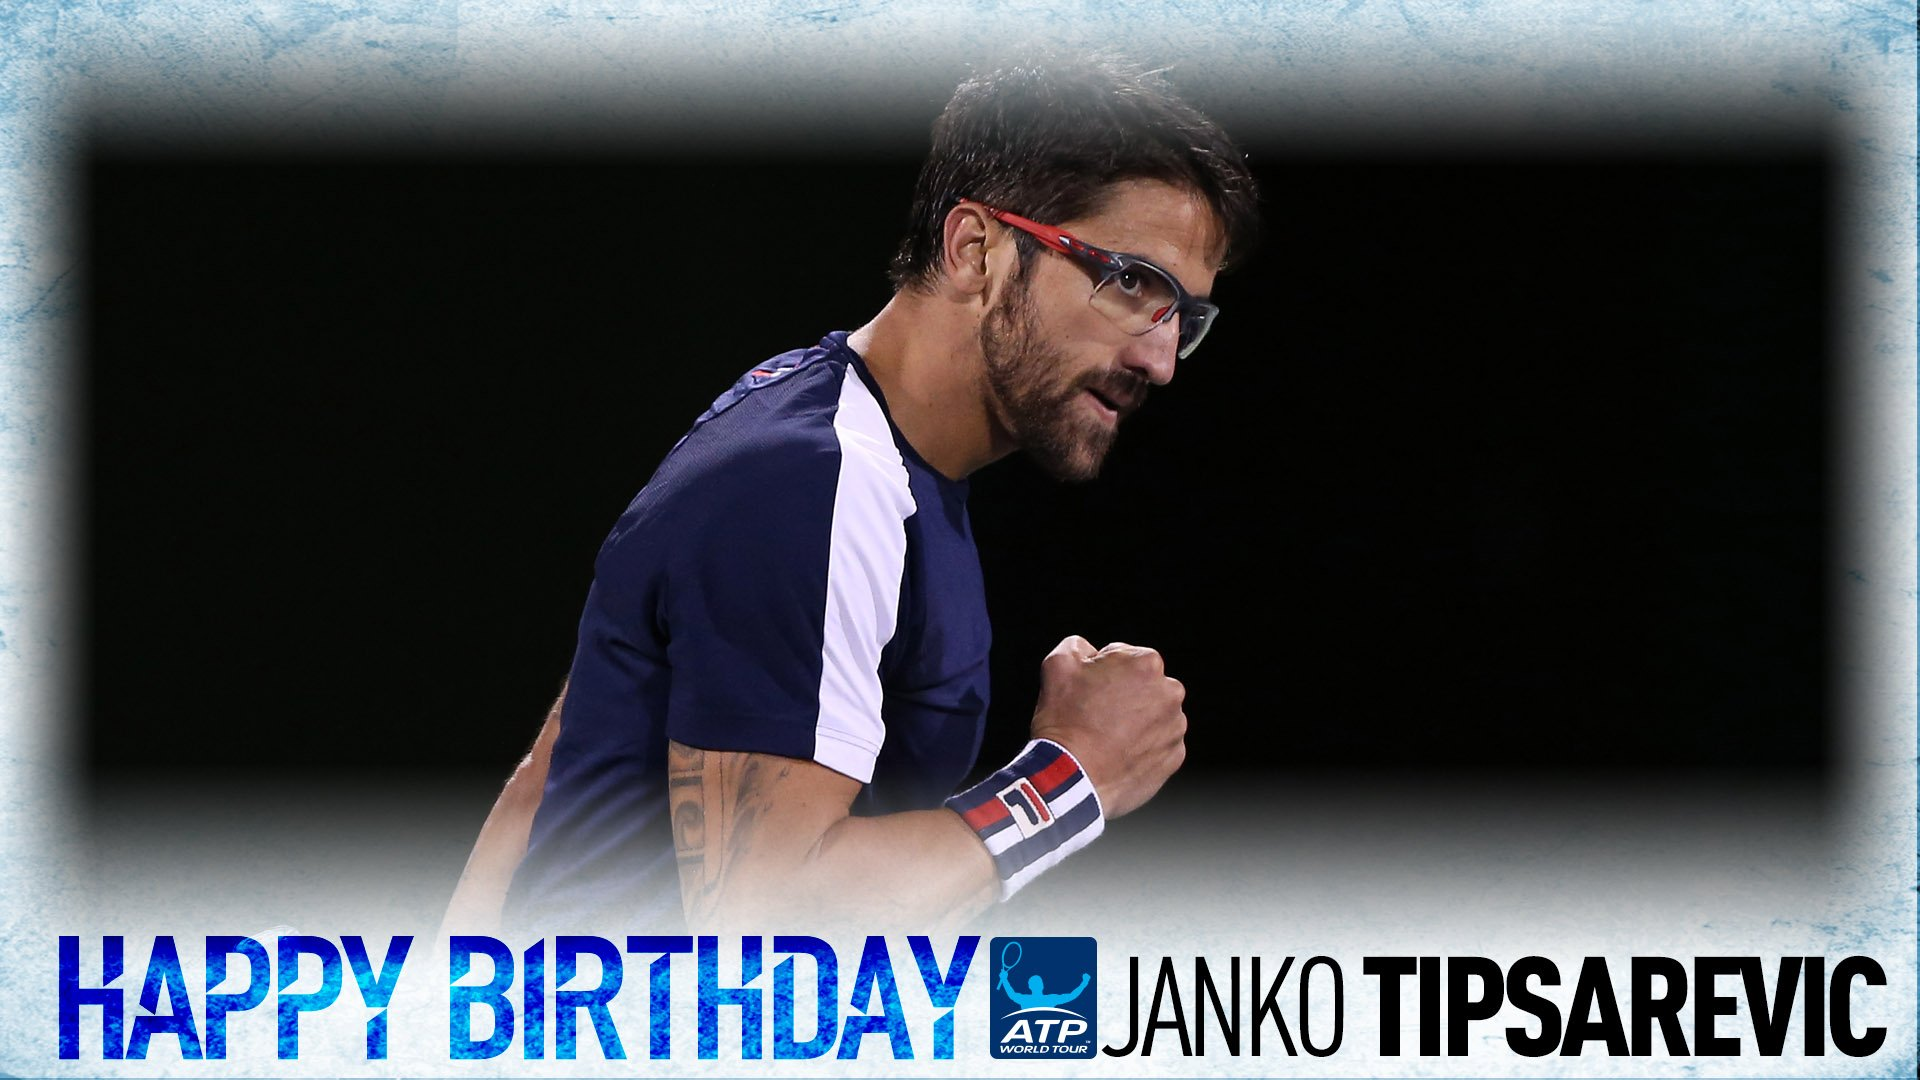 Wishing a happy 33rd birthday to @TipsarevicJanko! ���� View #ATP Profile: https://t.co/yWYgAURnxP https://t.co/5FD4W4mWmf